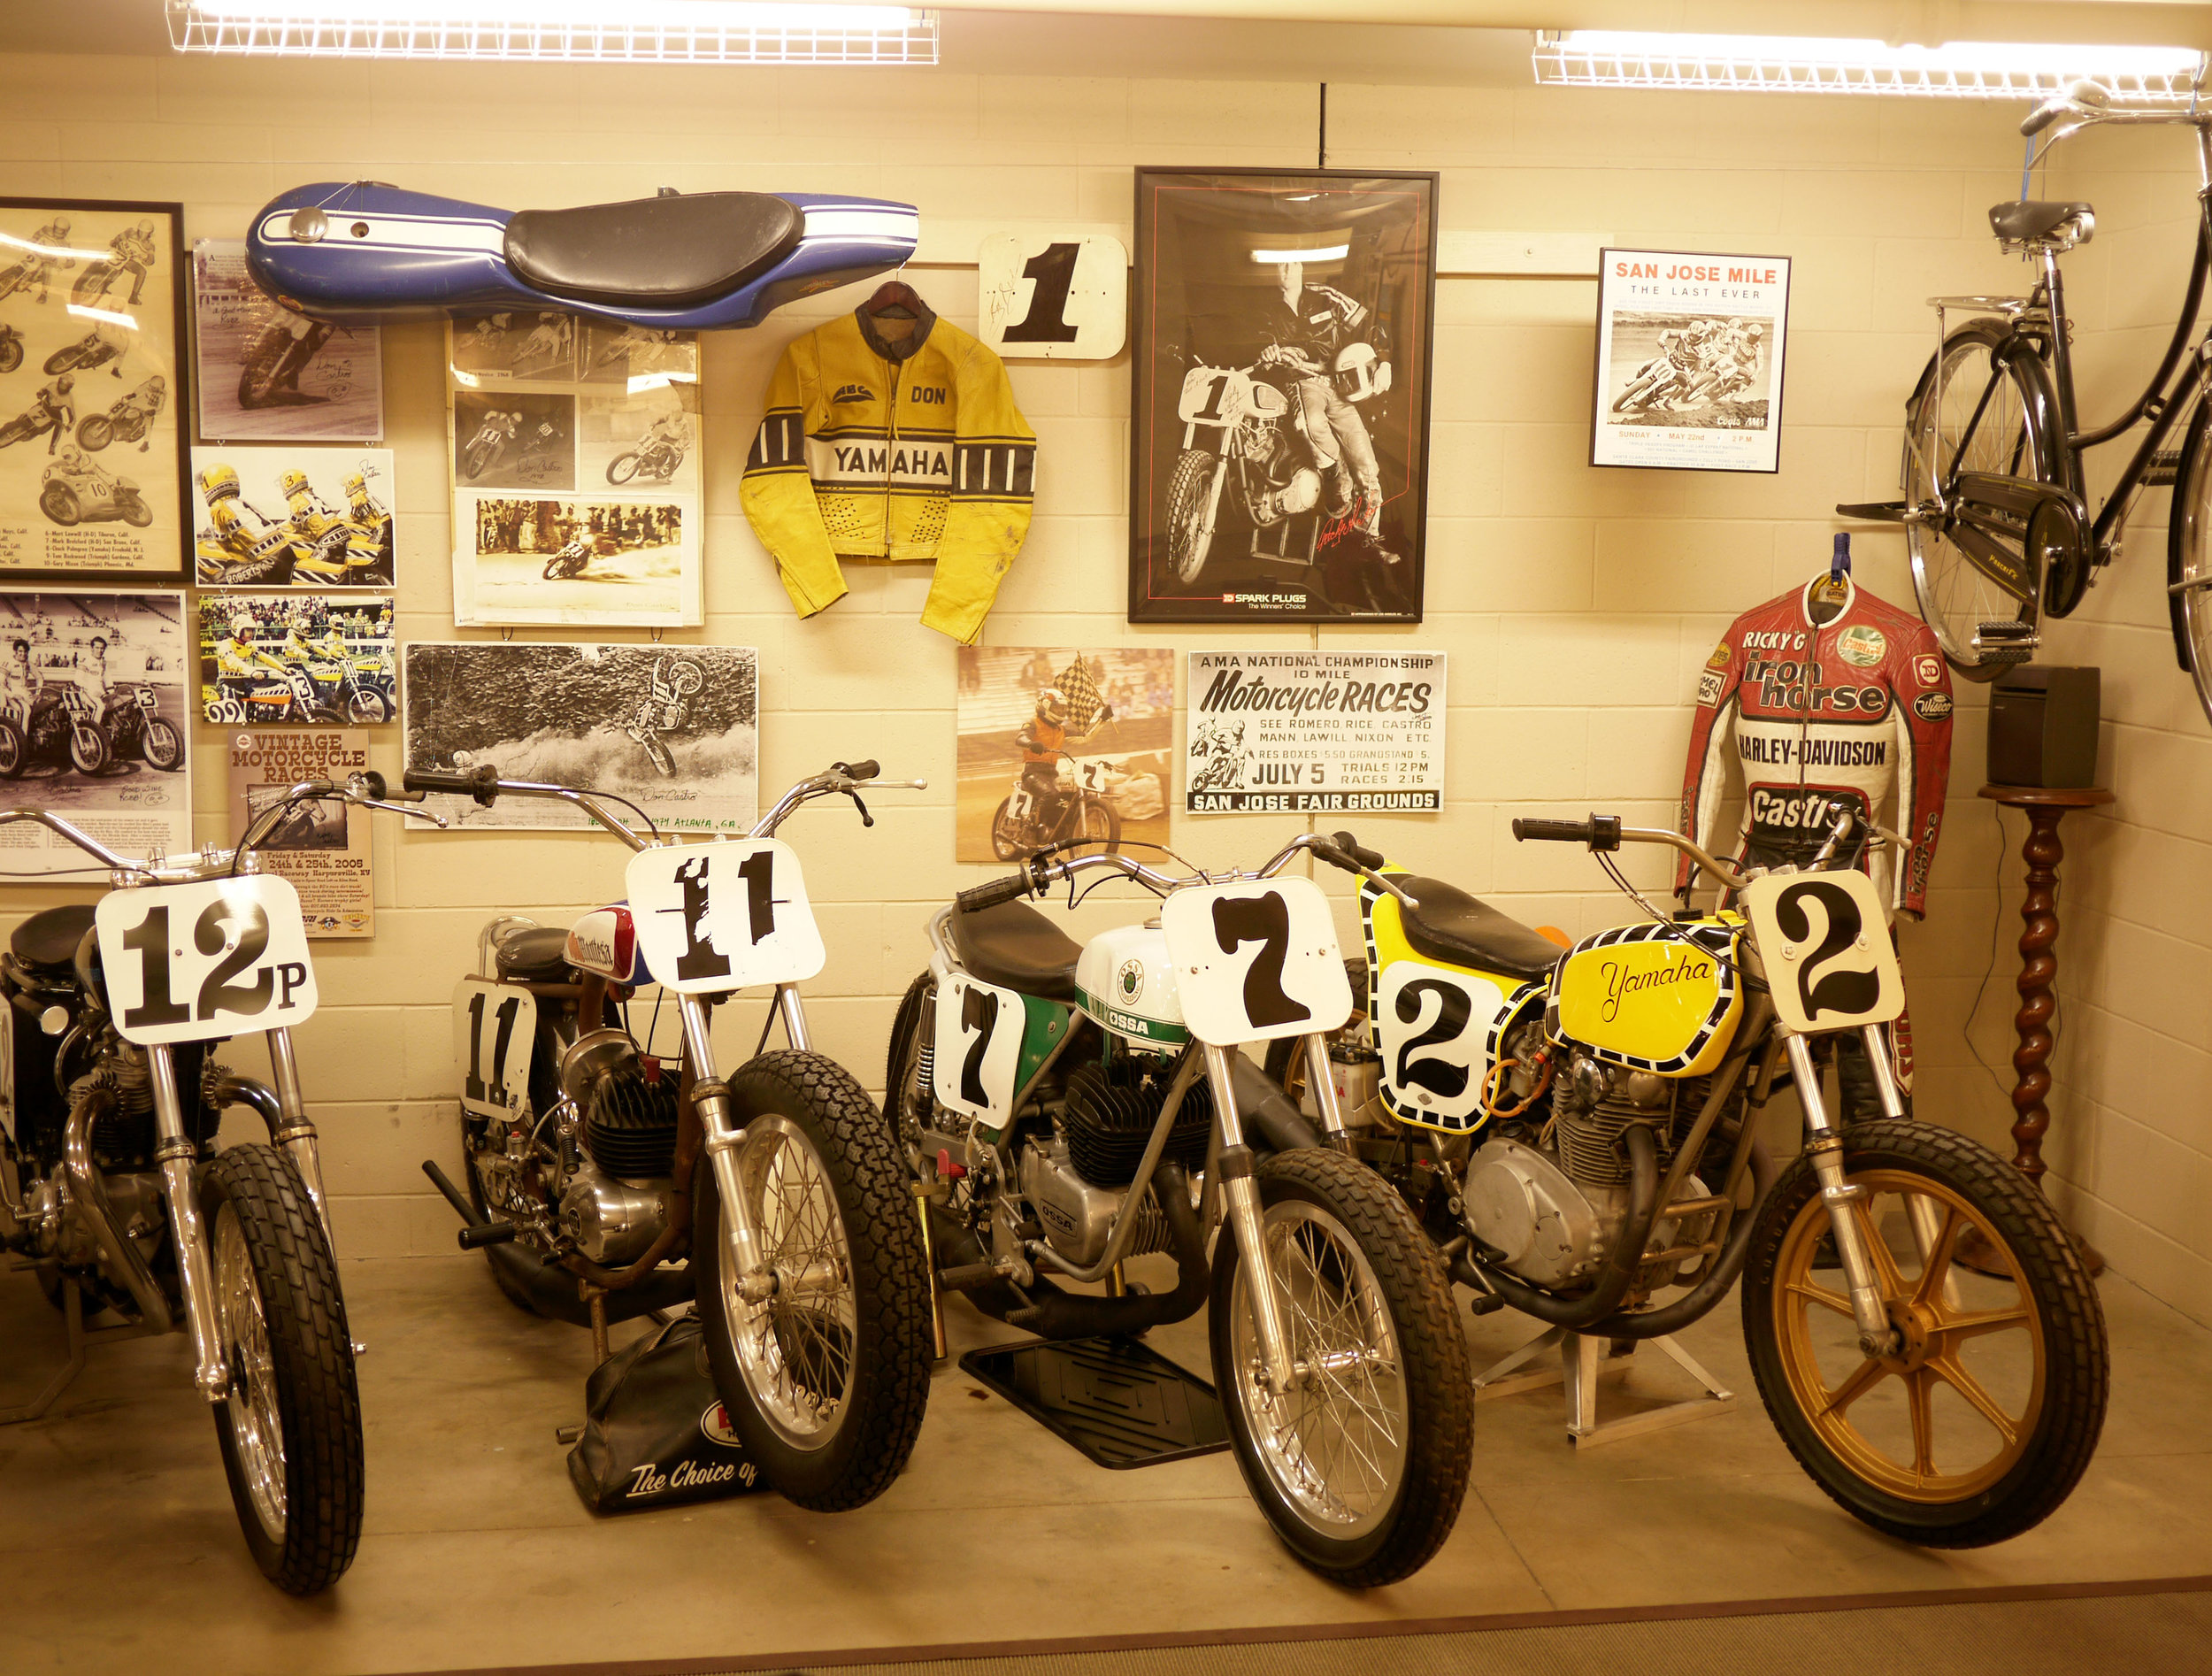 A lineup of classic flat trackers. On the right Kenny Robert's '74 title winning XS 650 based Yamaha.